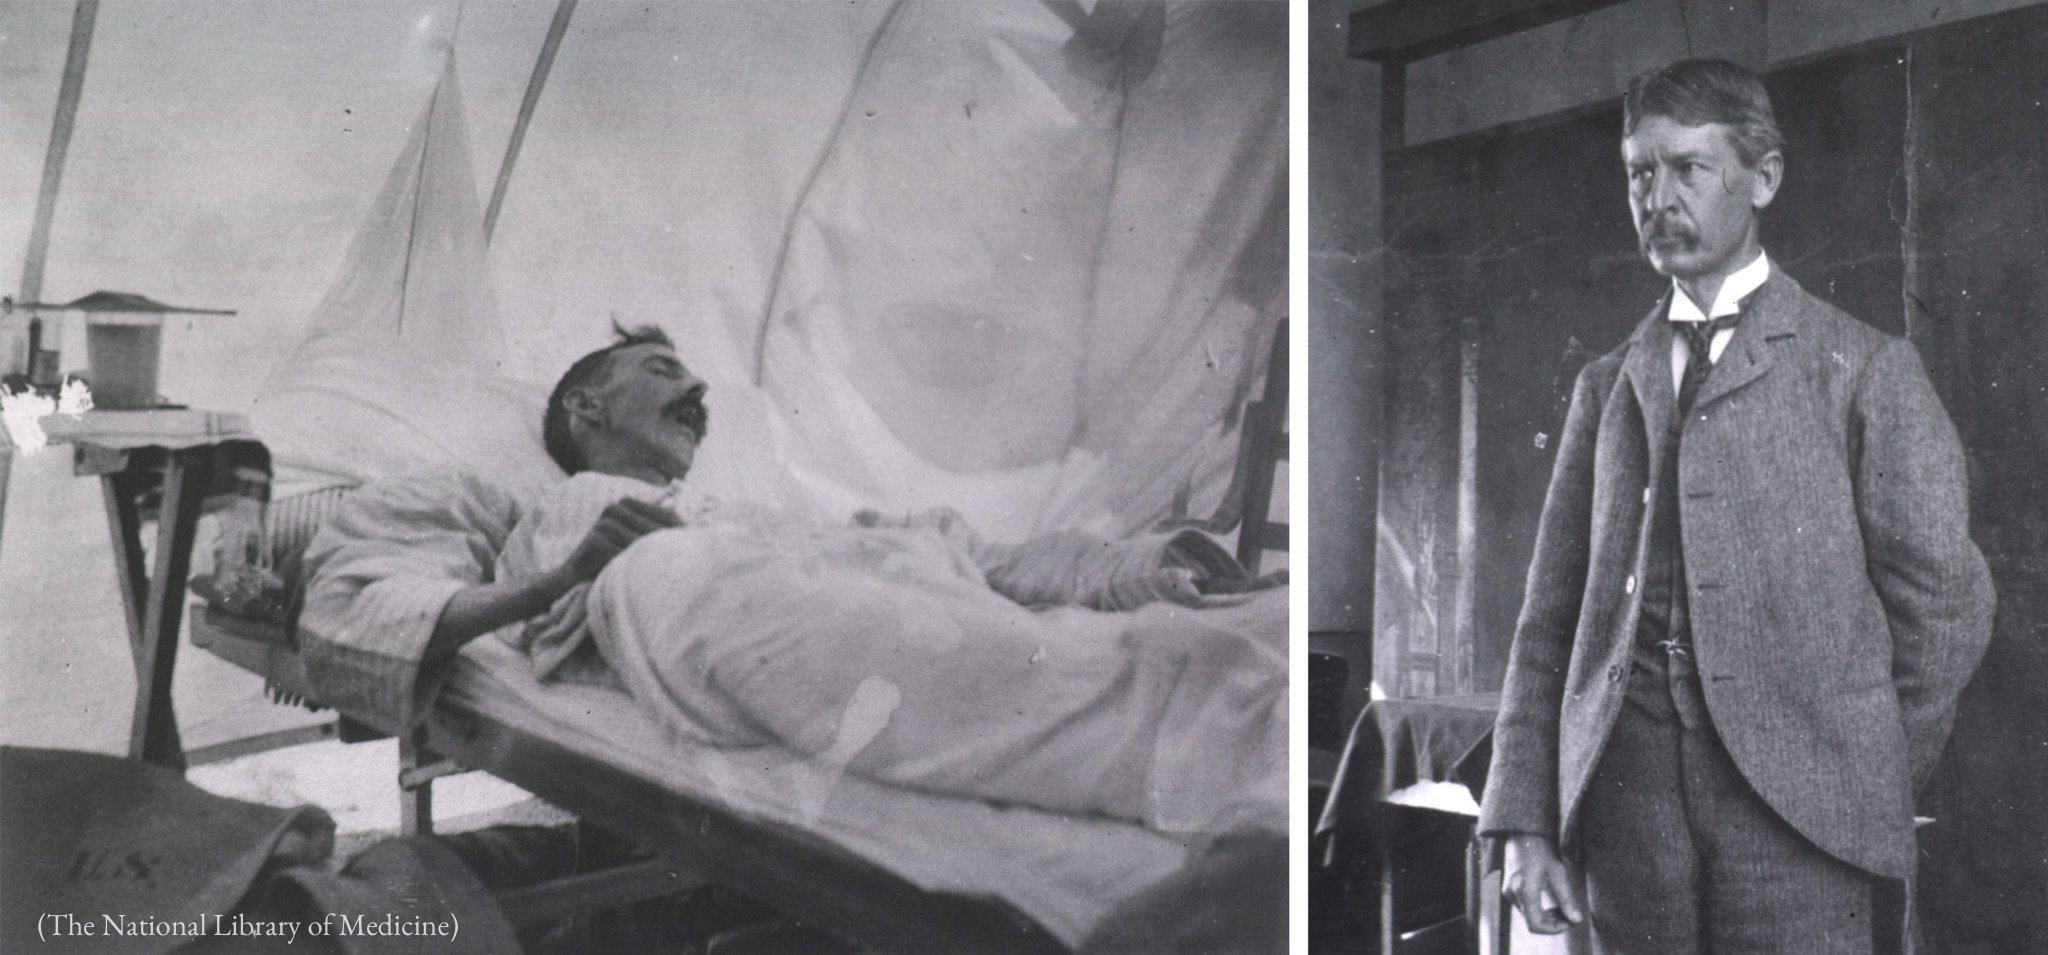 Left photo: Patient lying on low bed next to cloth wall. Right photo: Man with mustache in three-piece suit (The National Library of Medicine)